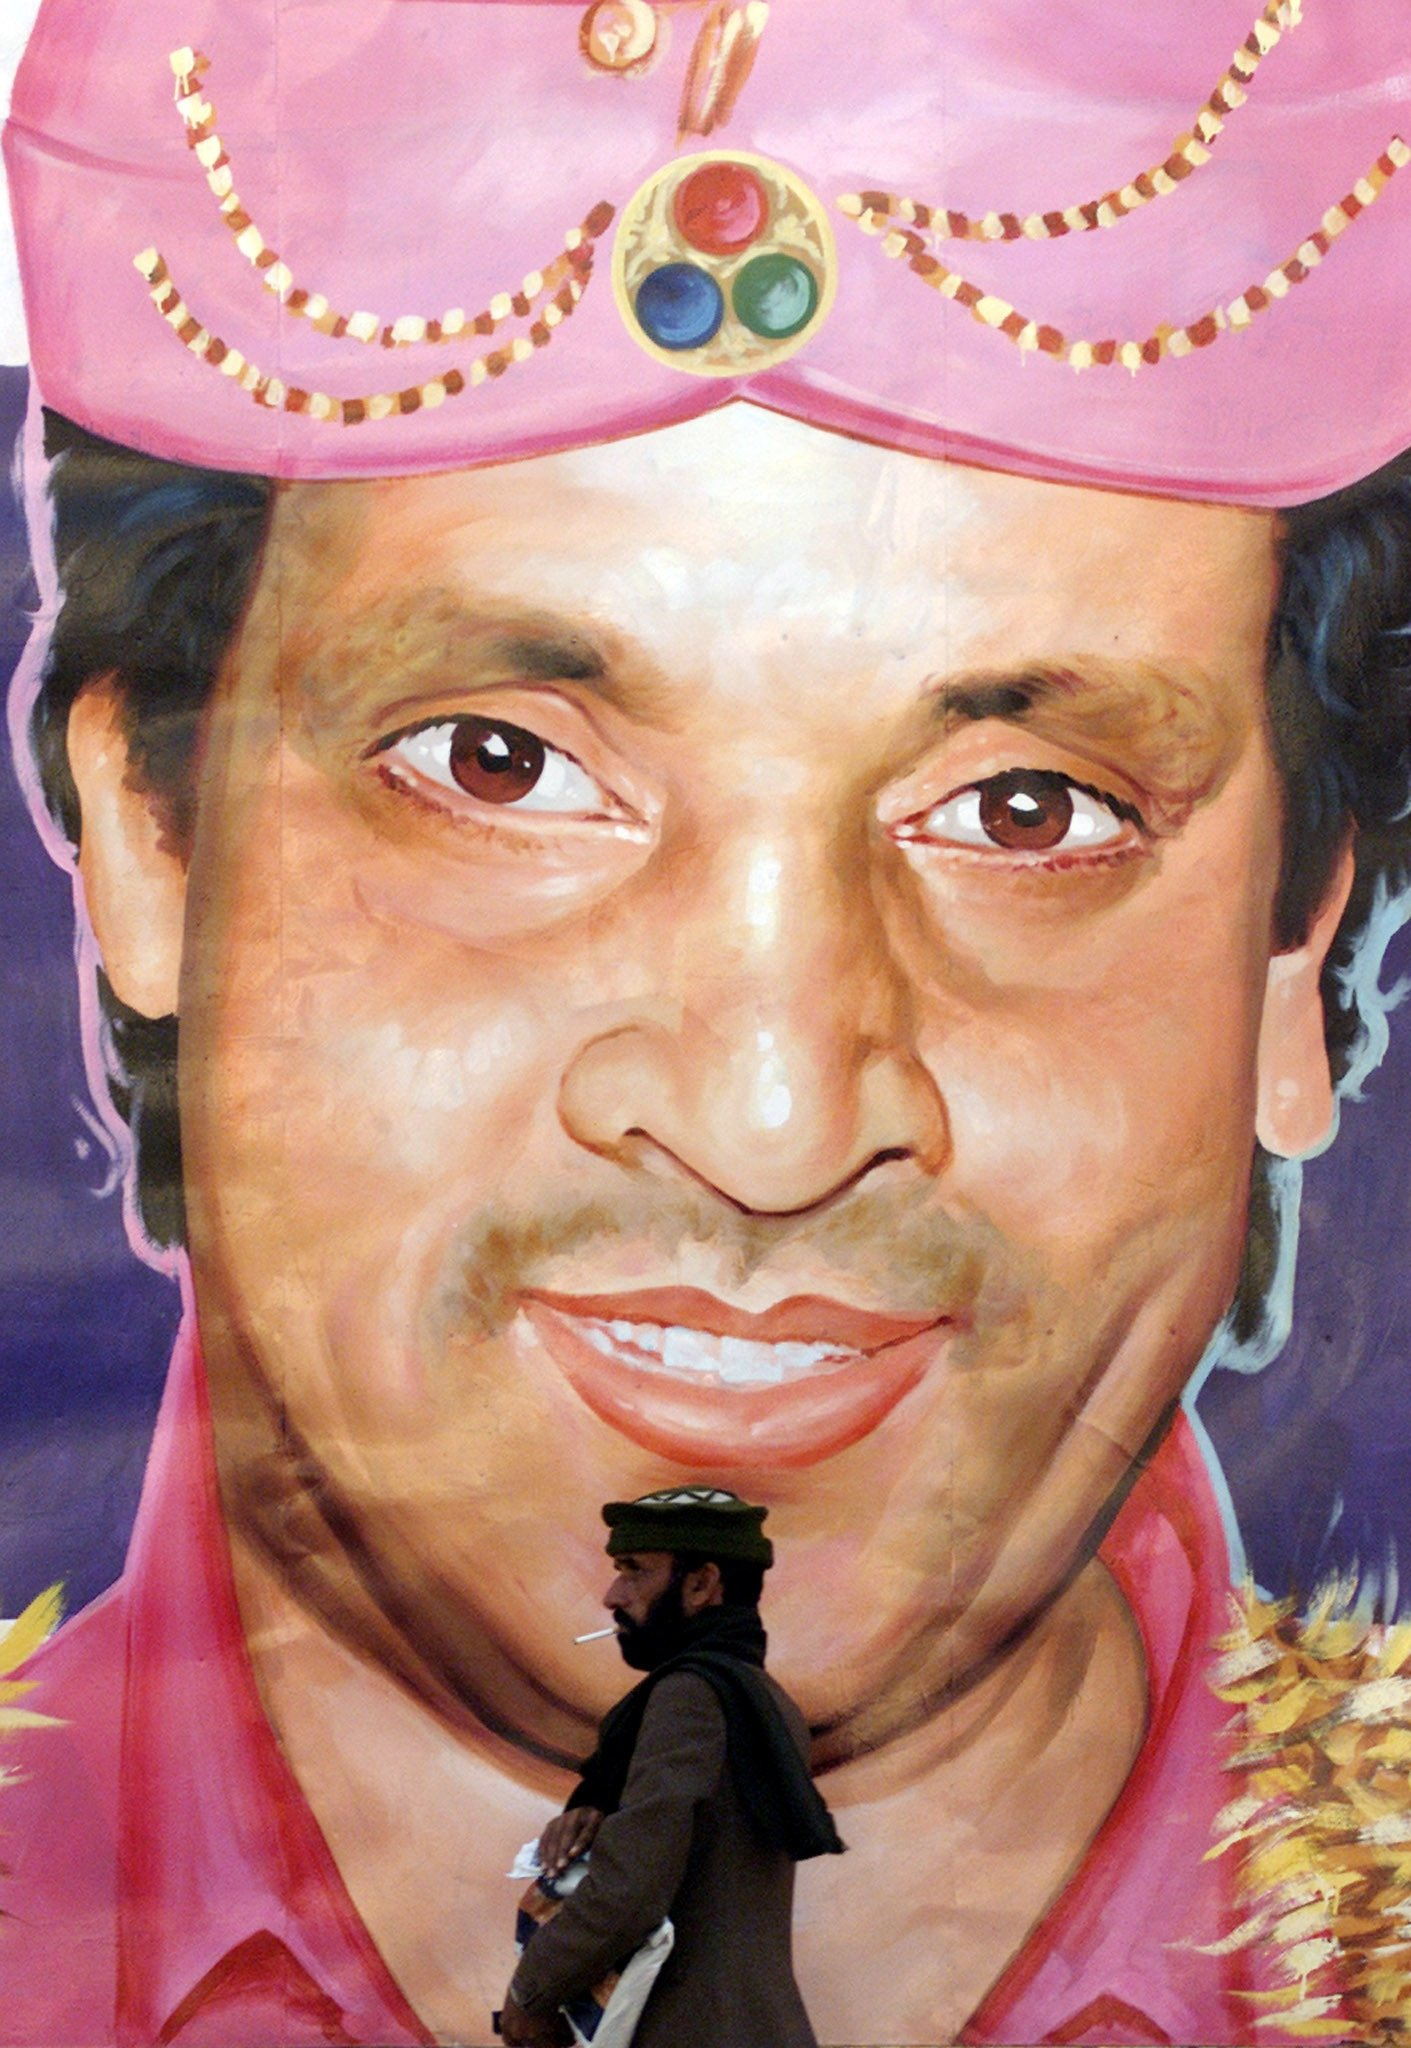 A Pakistani man walks past a huge portrait of Pakistani comedian and stage actor Umar Sharif outside a theater in Rawalpindi on the outskirts of Islamabad, Pakistan, Jan. 21, 2002. (Reuters Photo)